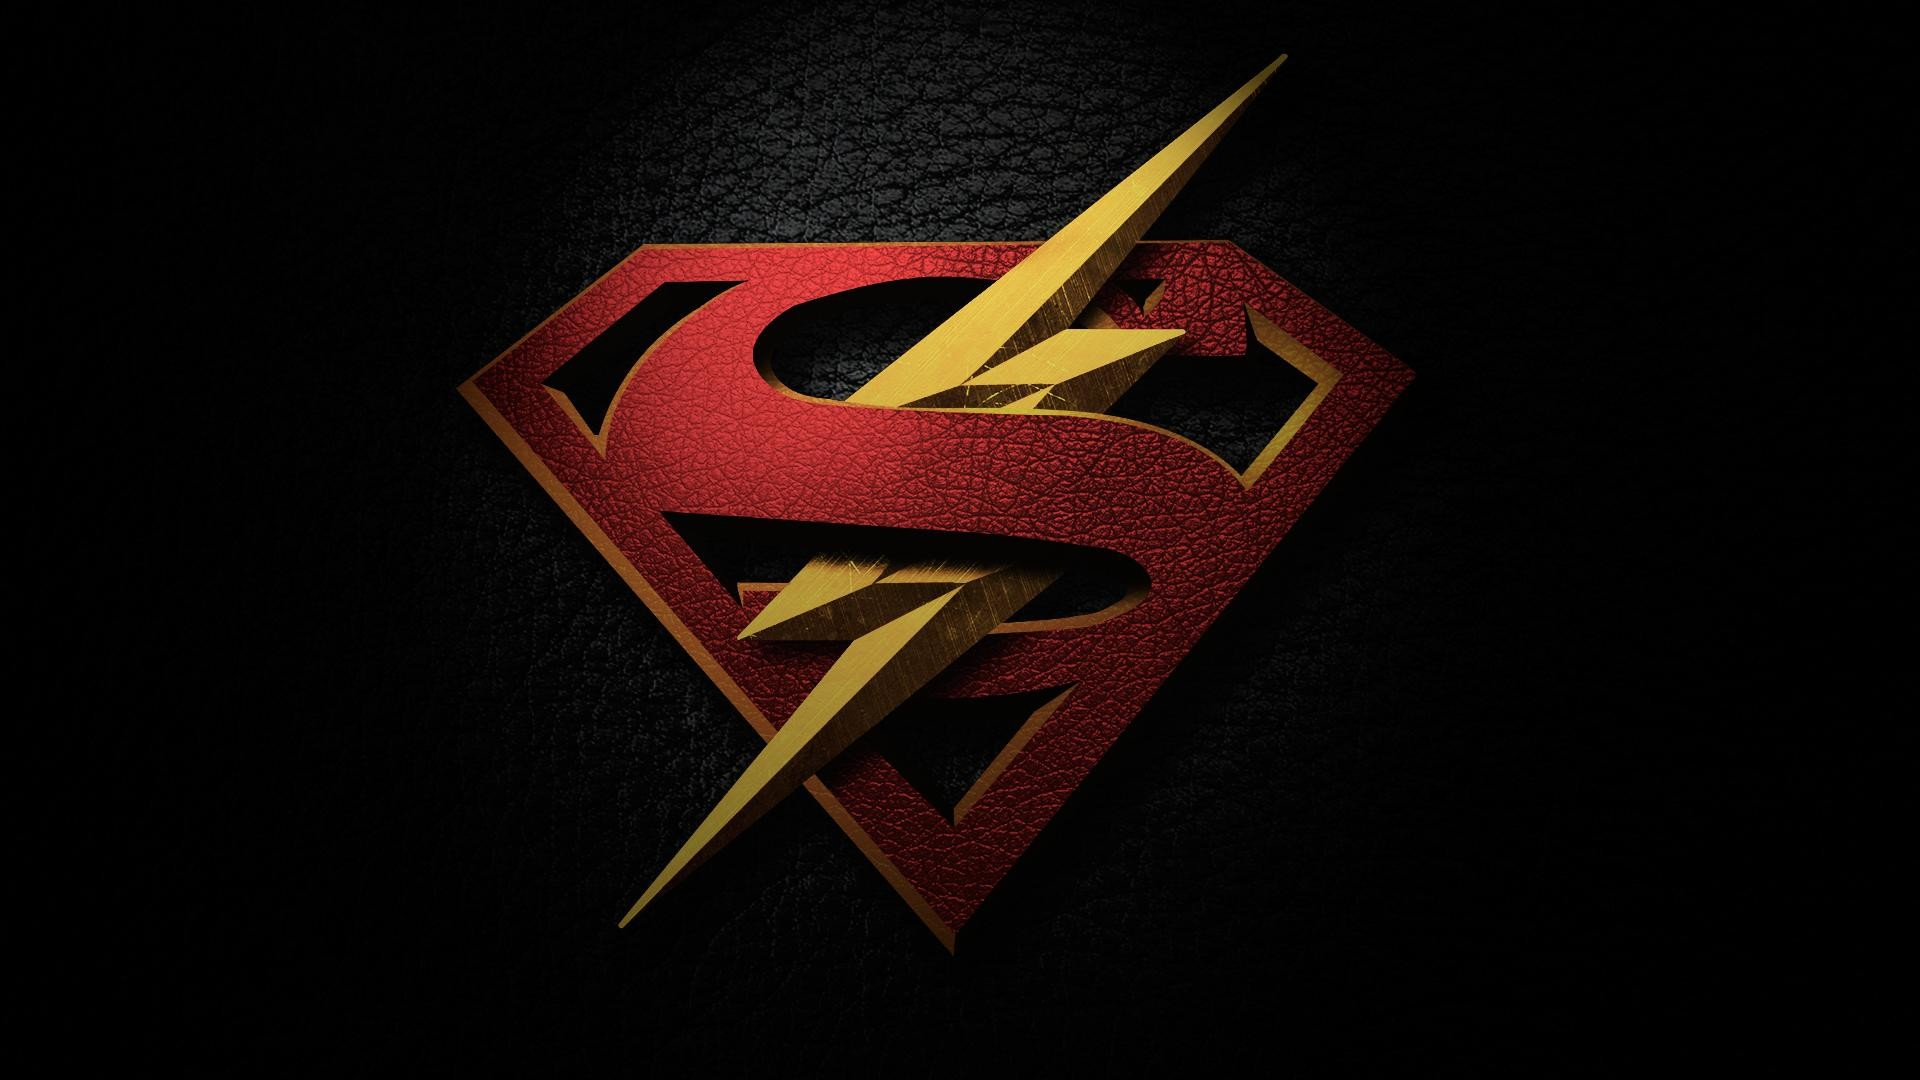 supergirl logo wallpaper